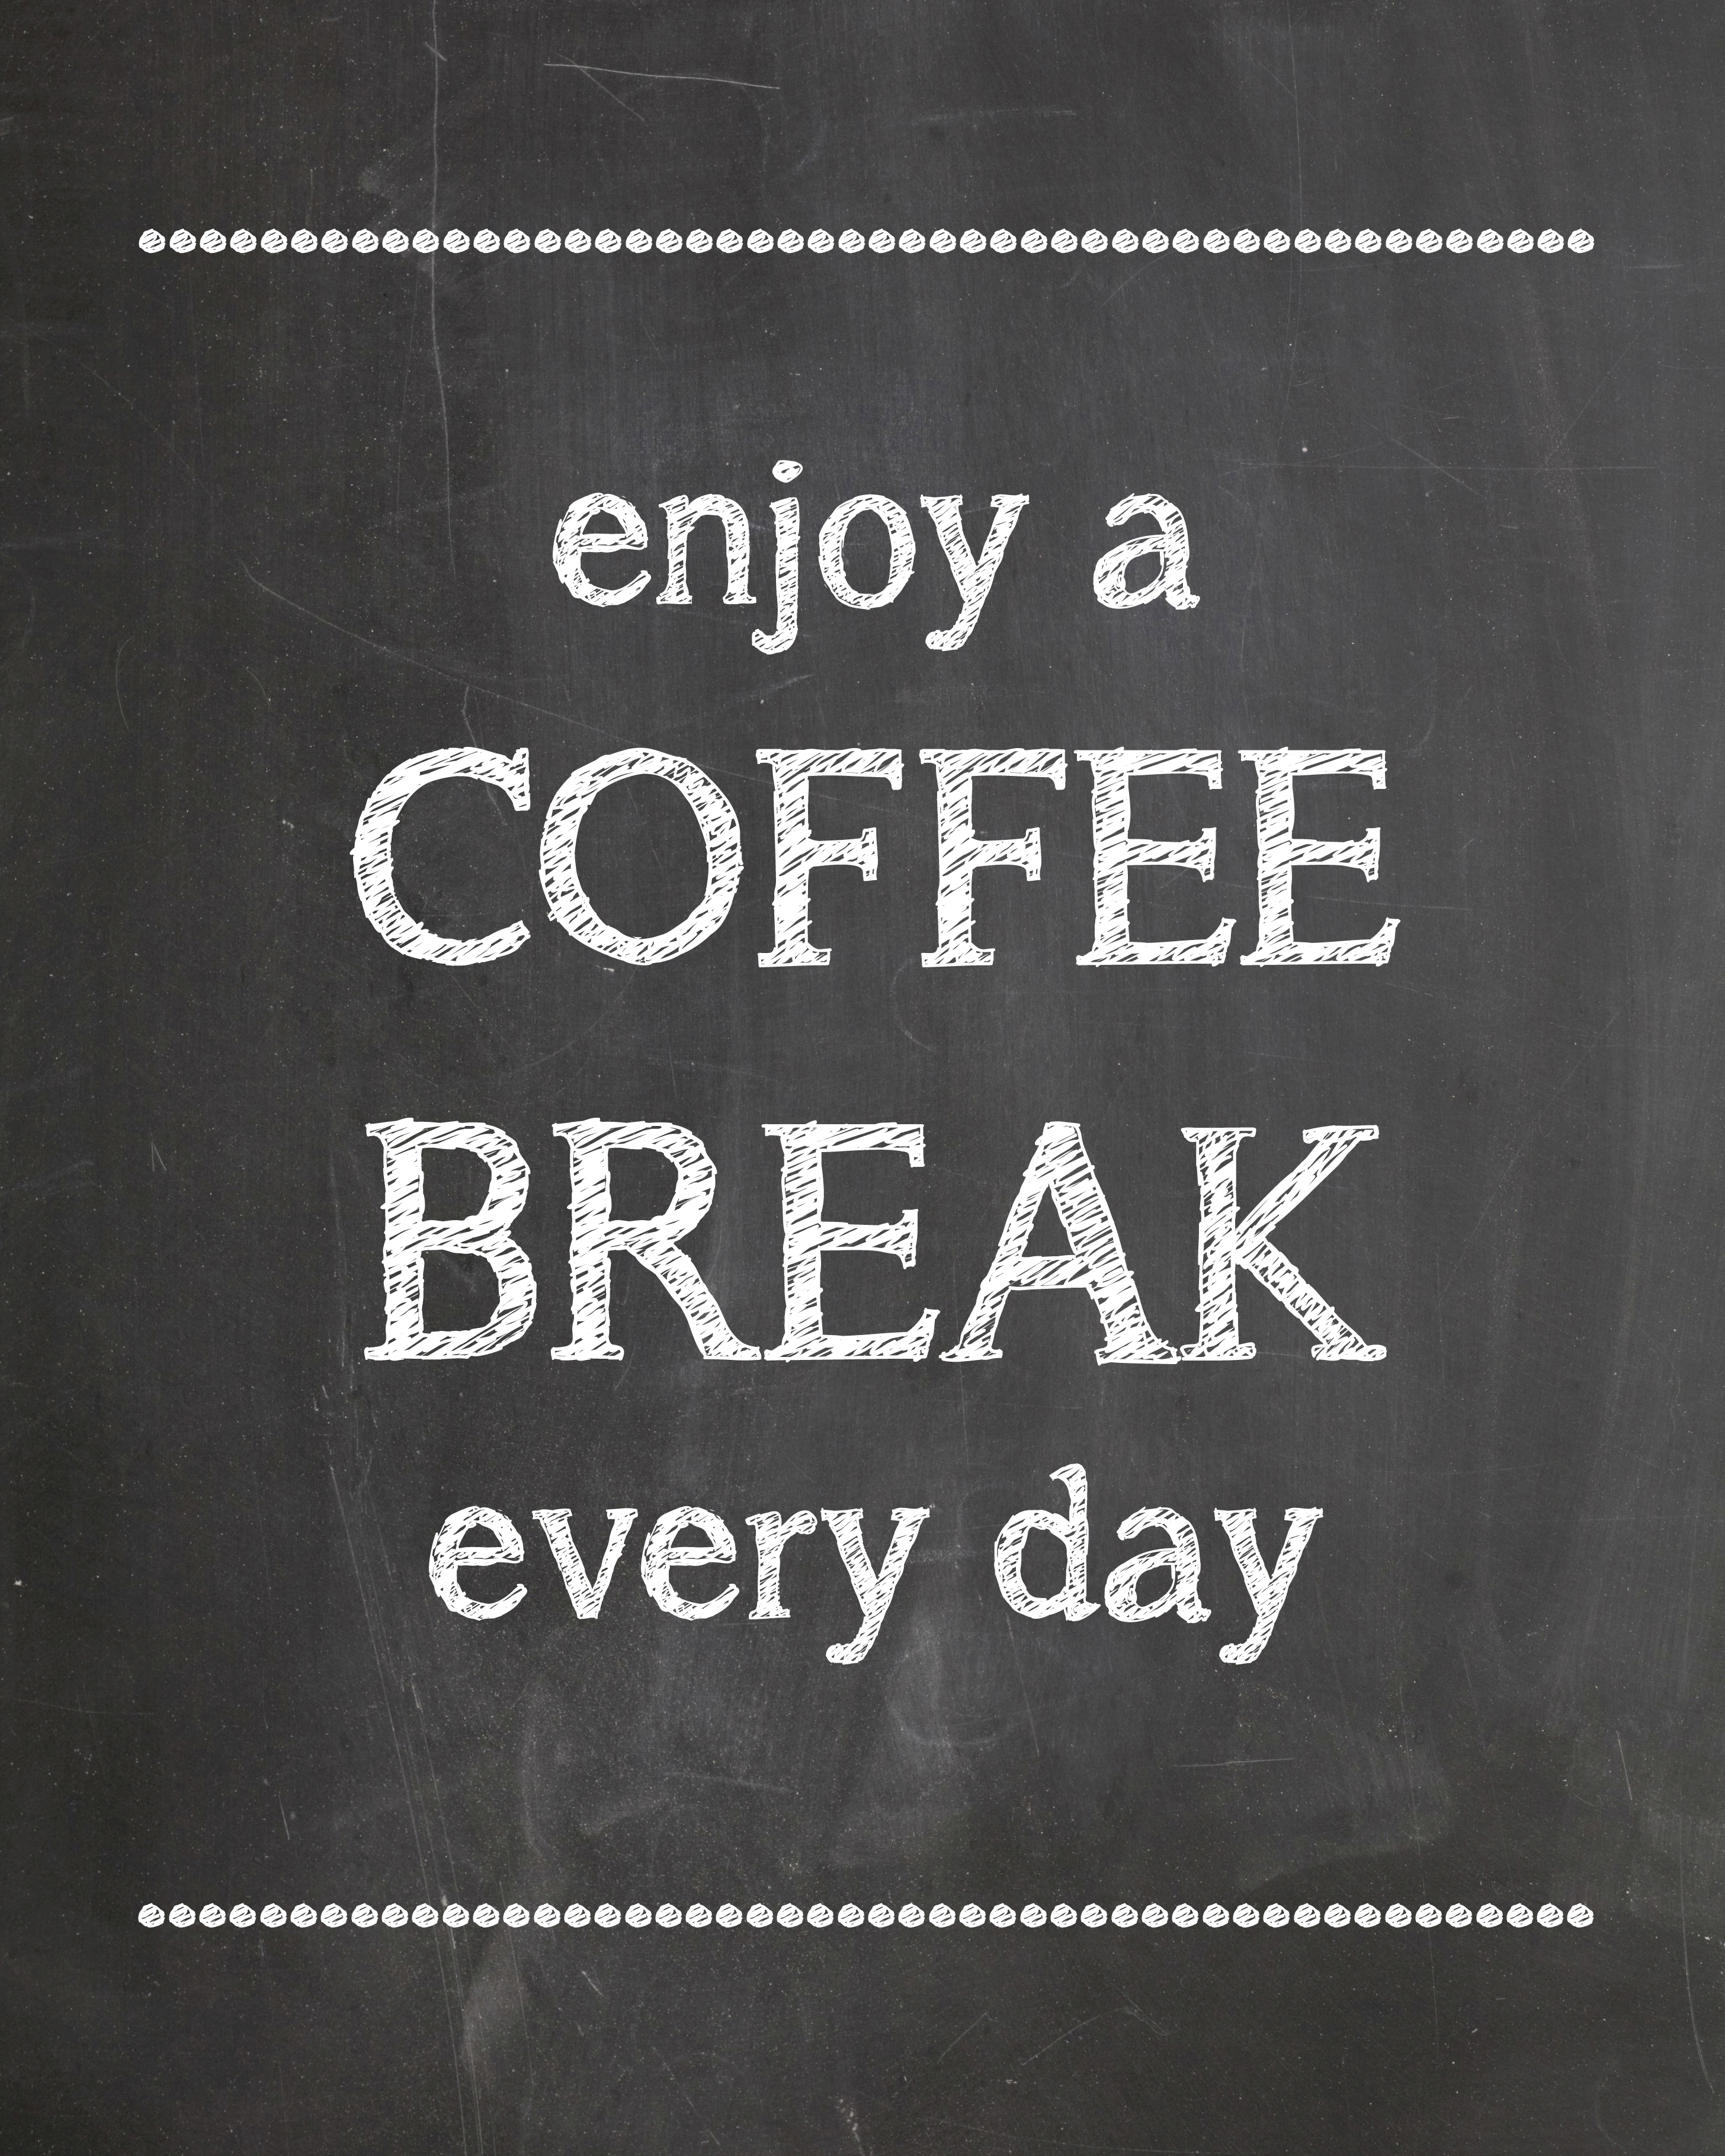 graphic about You Deserve a Break Printable known as Espresso Crack Period - Printable - #KraftMeACoffee